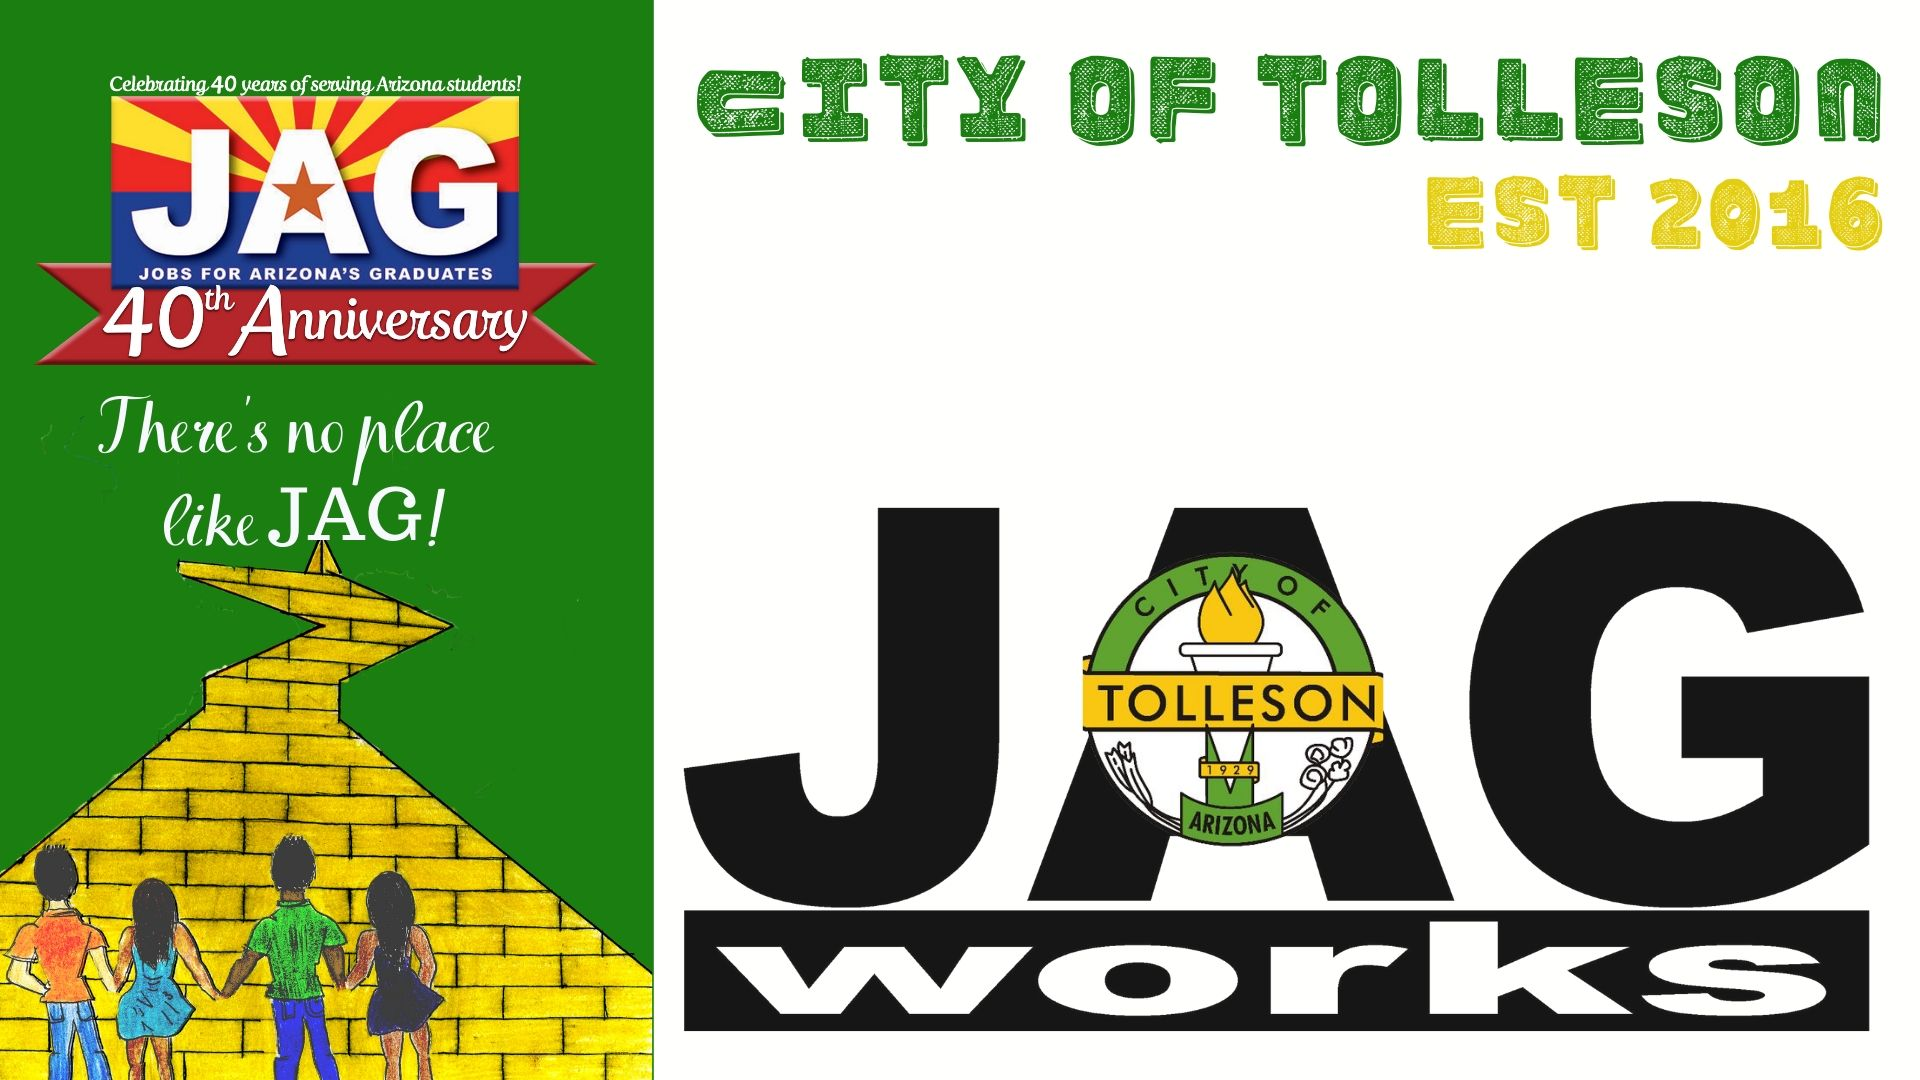 City of Tolleson JAG Works